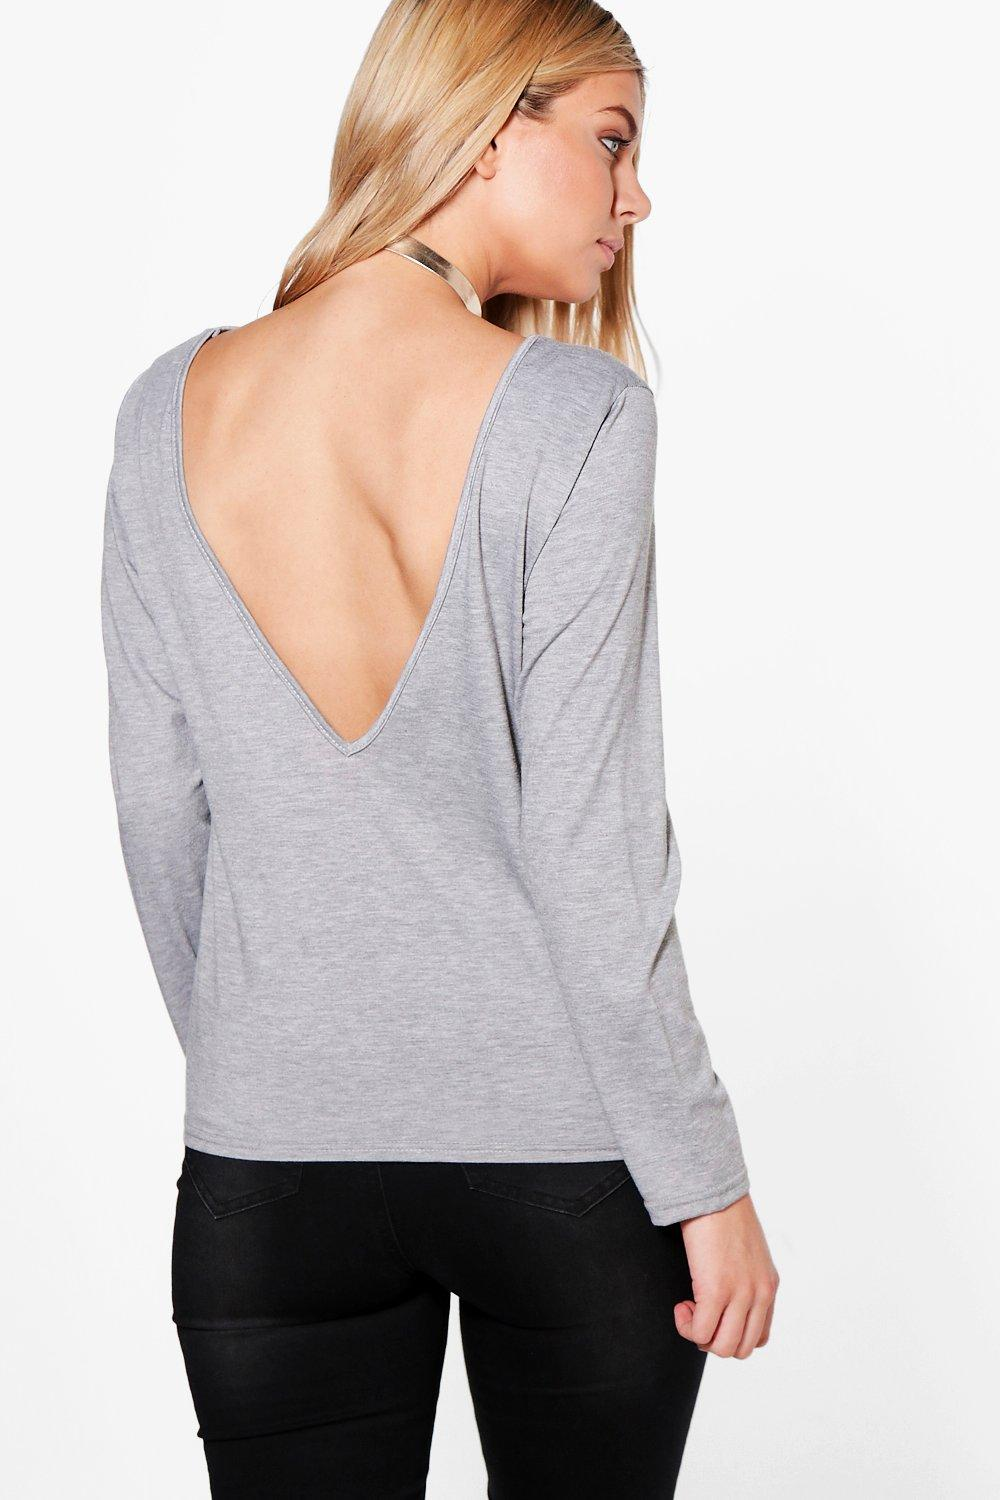 Molly V Back Long Sleeve T-Shirt